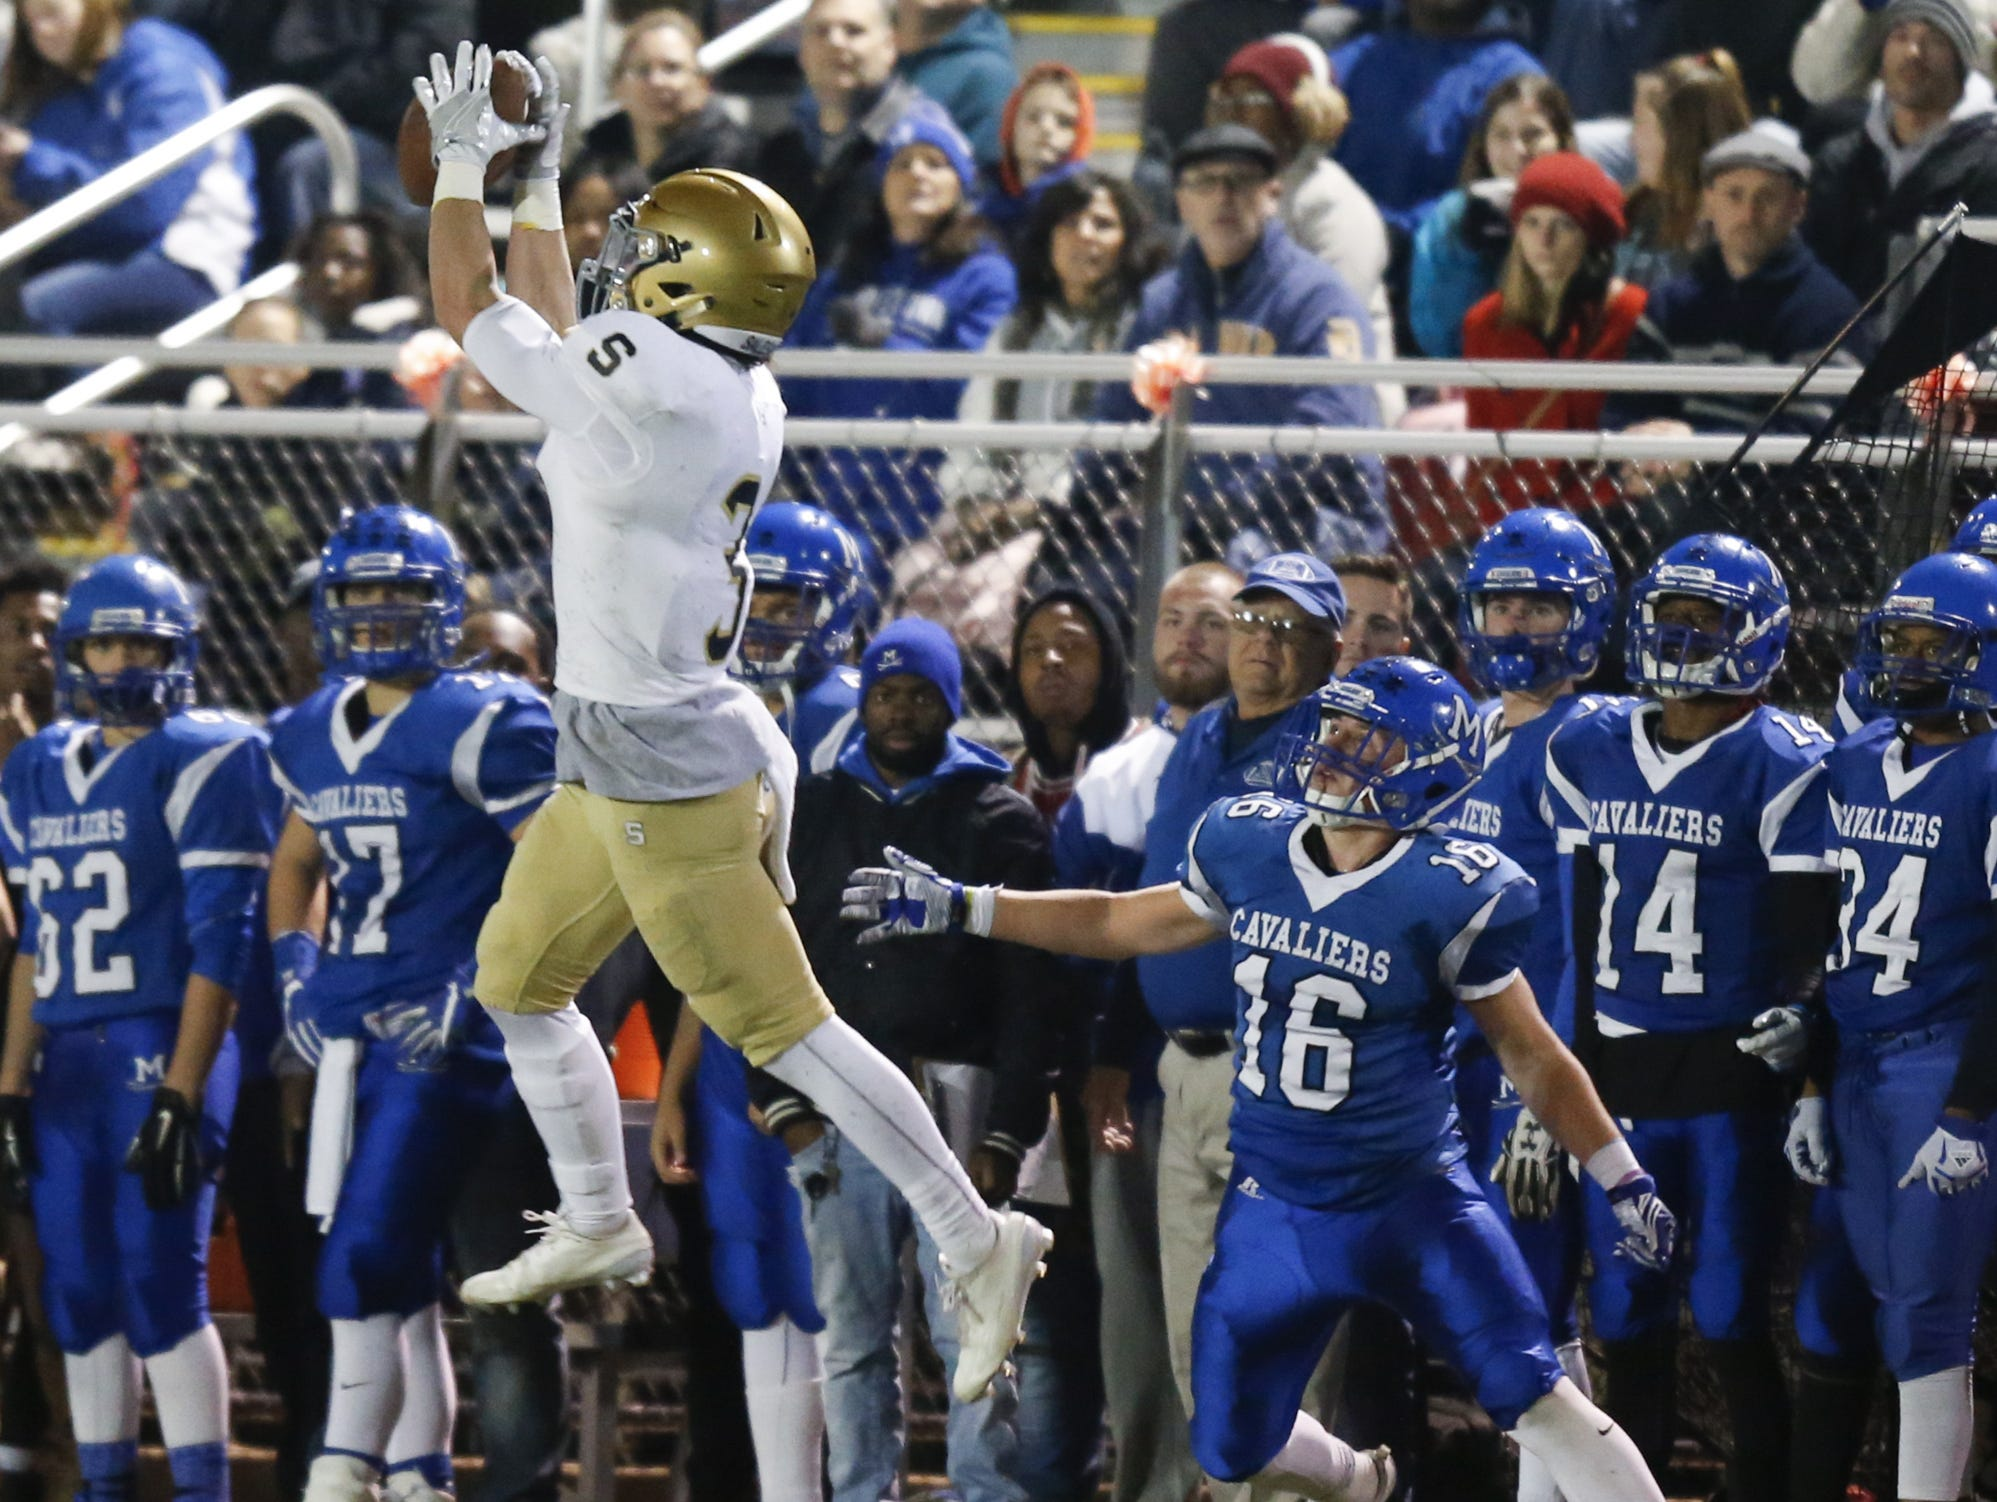 Salesianum's Michael Drake gets an interception in front of Middletown receiver Nick Johnston in the second quarter of a DIAA Division I state tournament semifinal at Cavalier Stadium Friday.